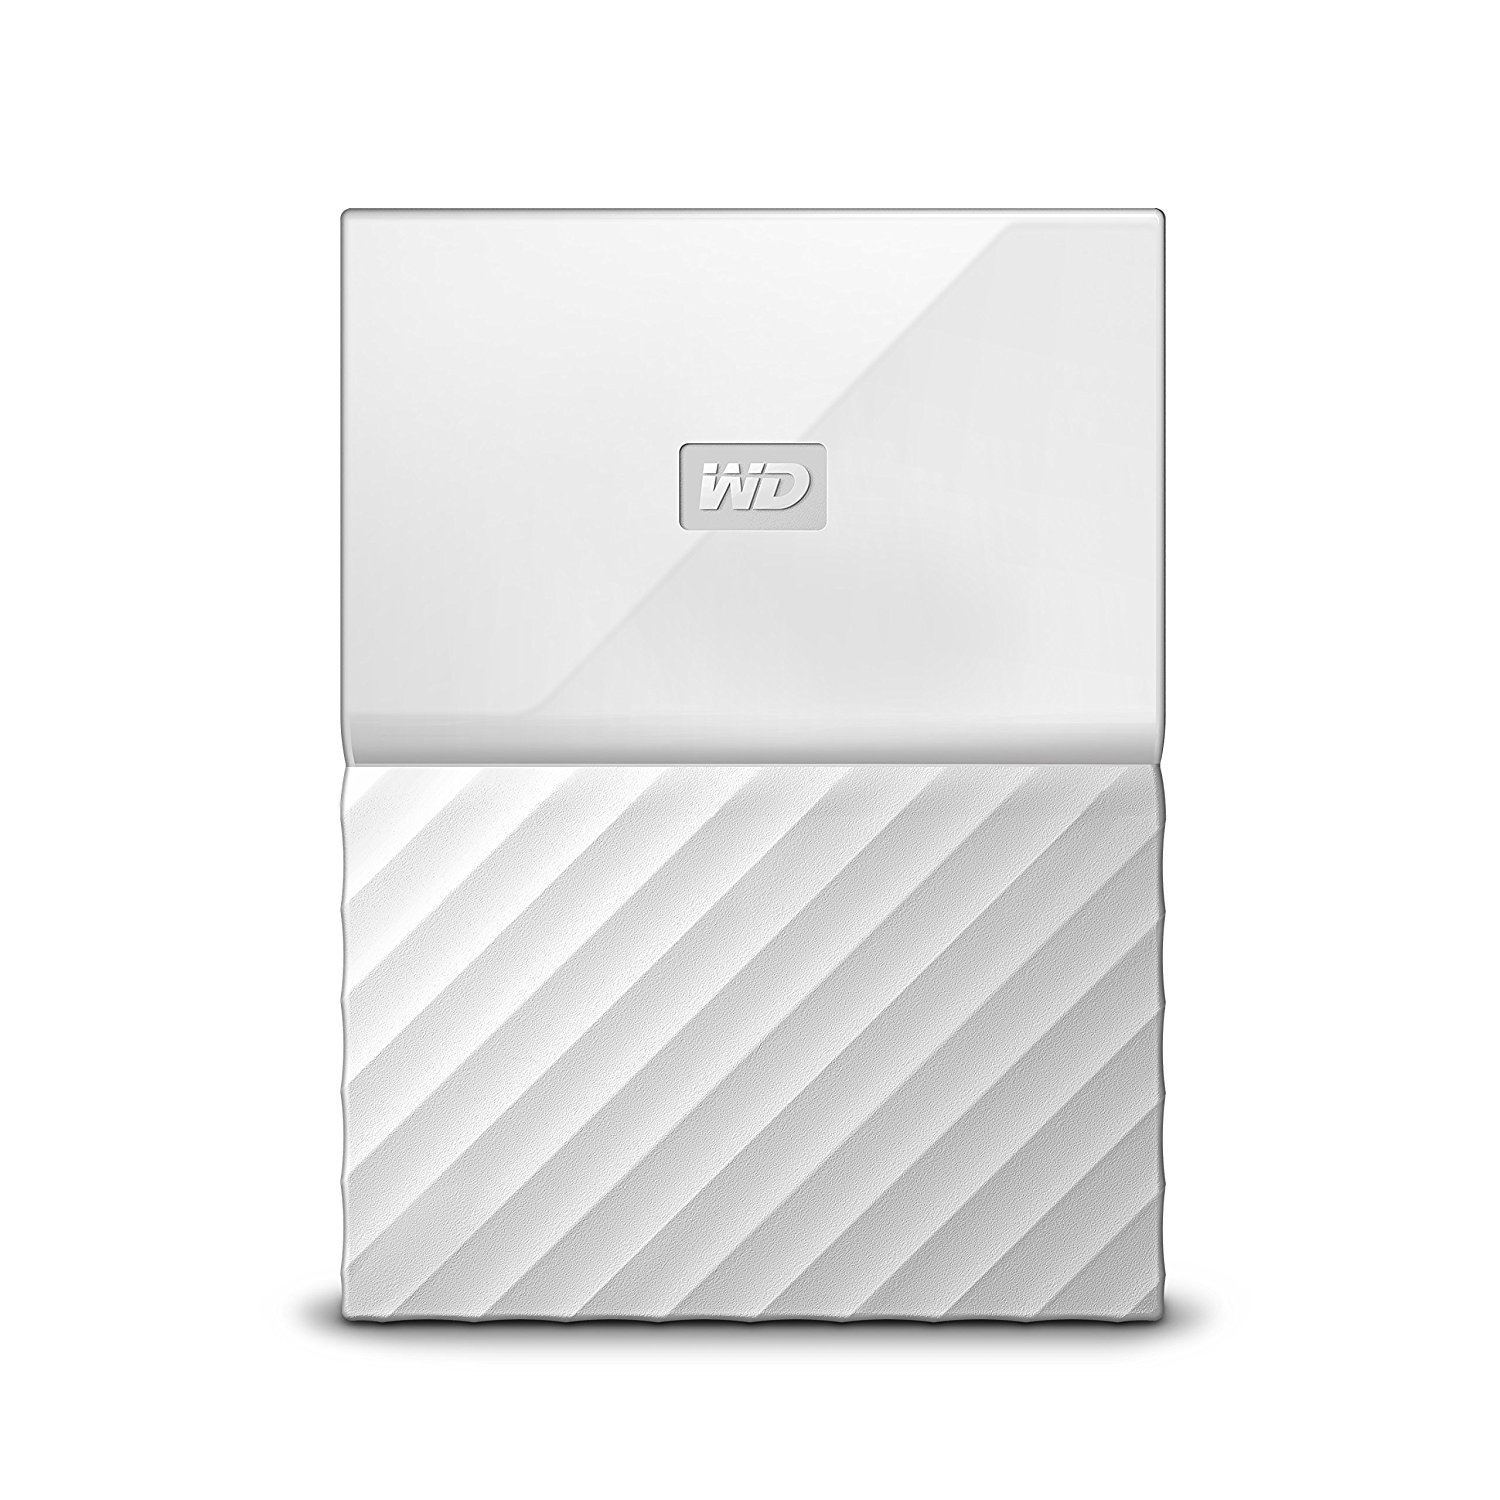 WESTERN DIGITAL MY PASSPORT 2000GB WHITE EXTERNAL HARD DRIVE